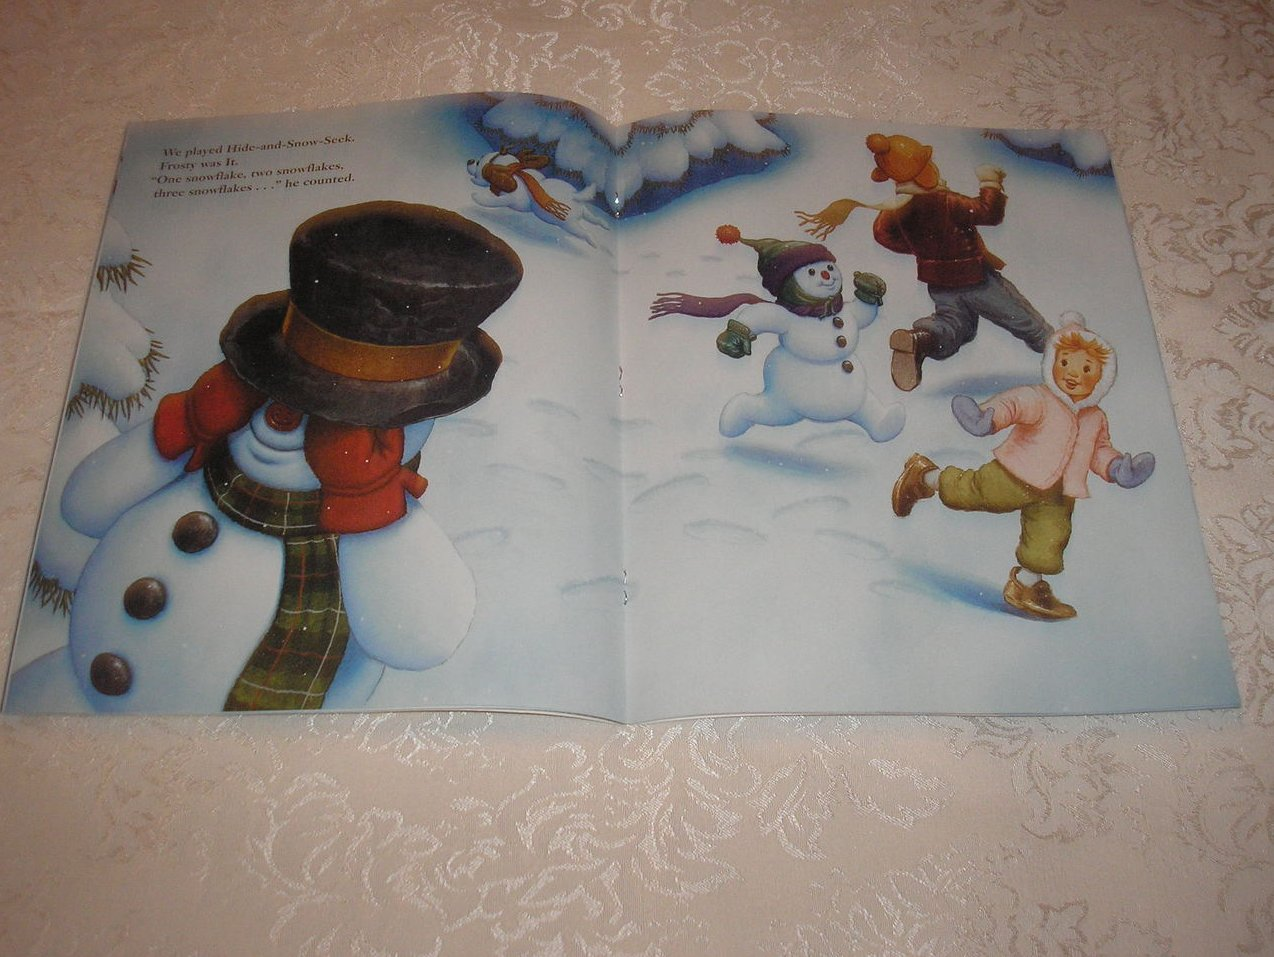 Image 3 of Frosty's New Friends Nelson Rollins Cowdrey Good Softcover